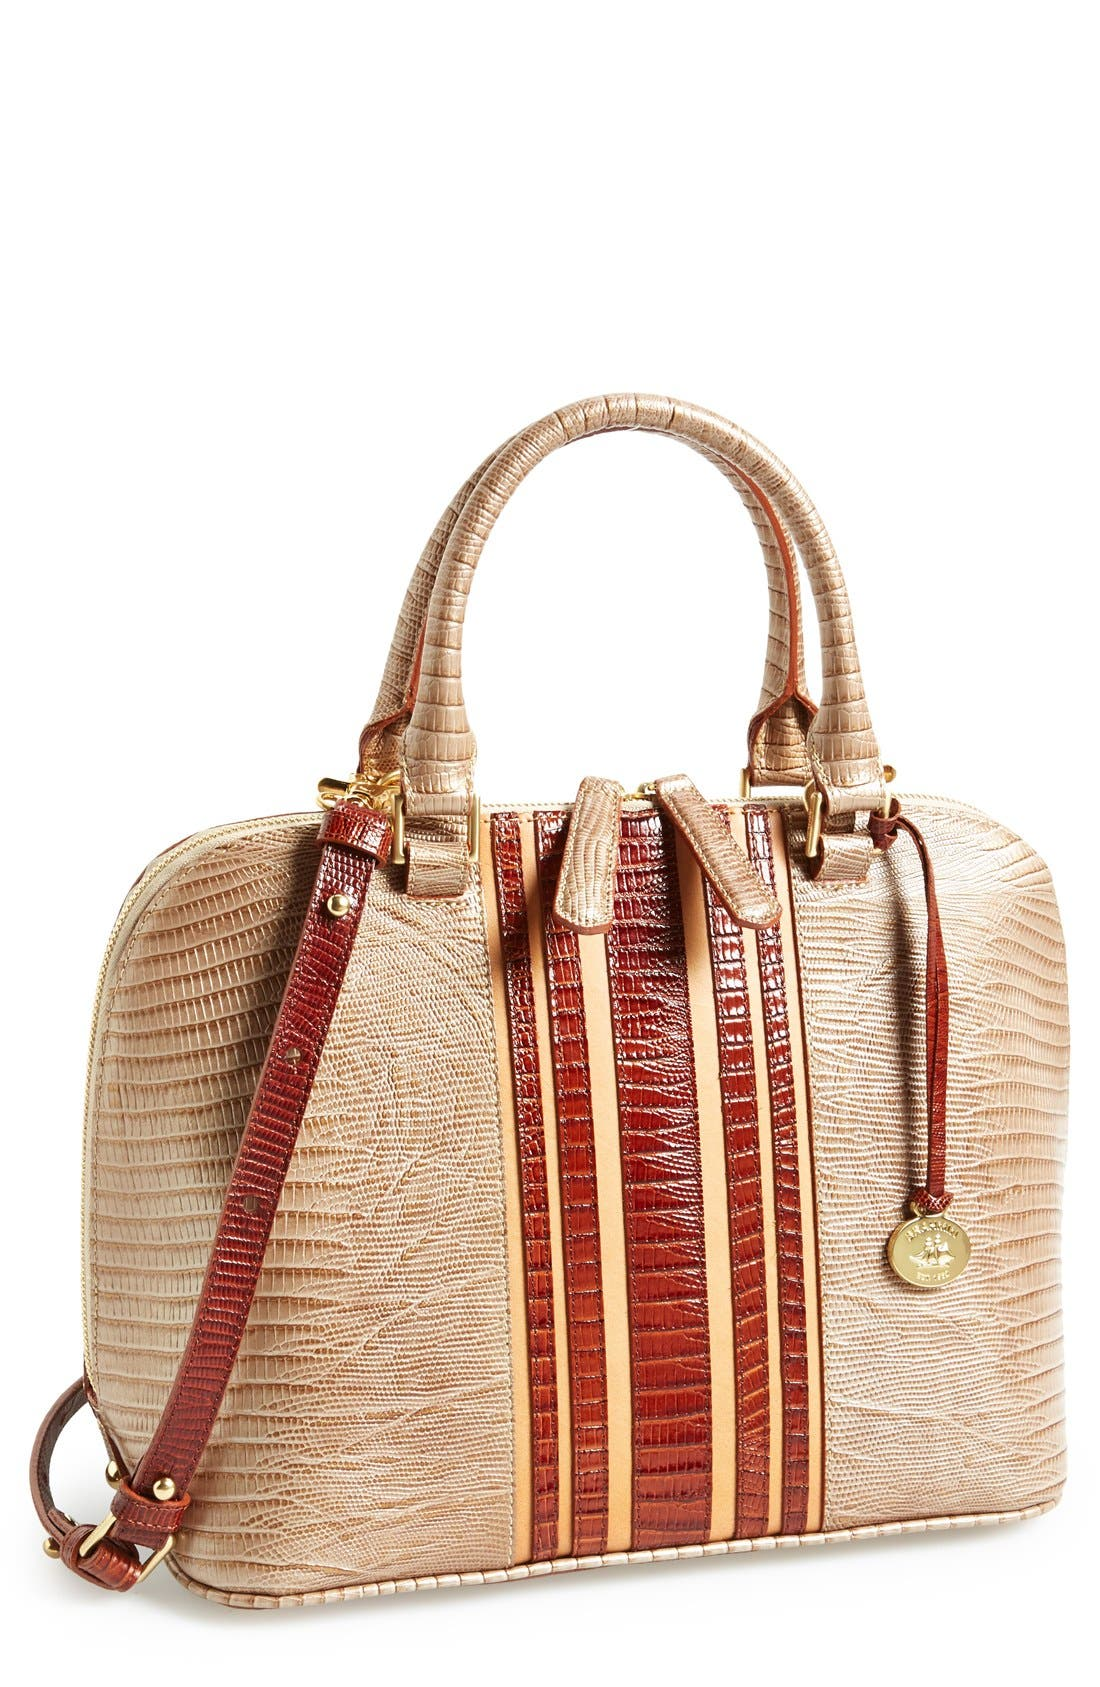 Main Image - Brahmin 'Vineyard - Vivian' Dome Satchel